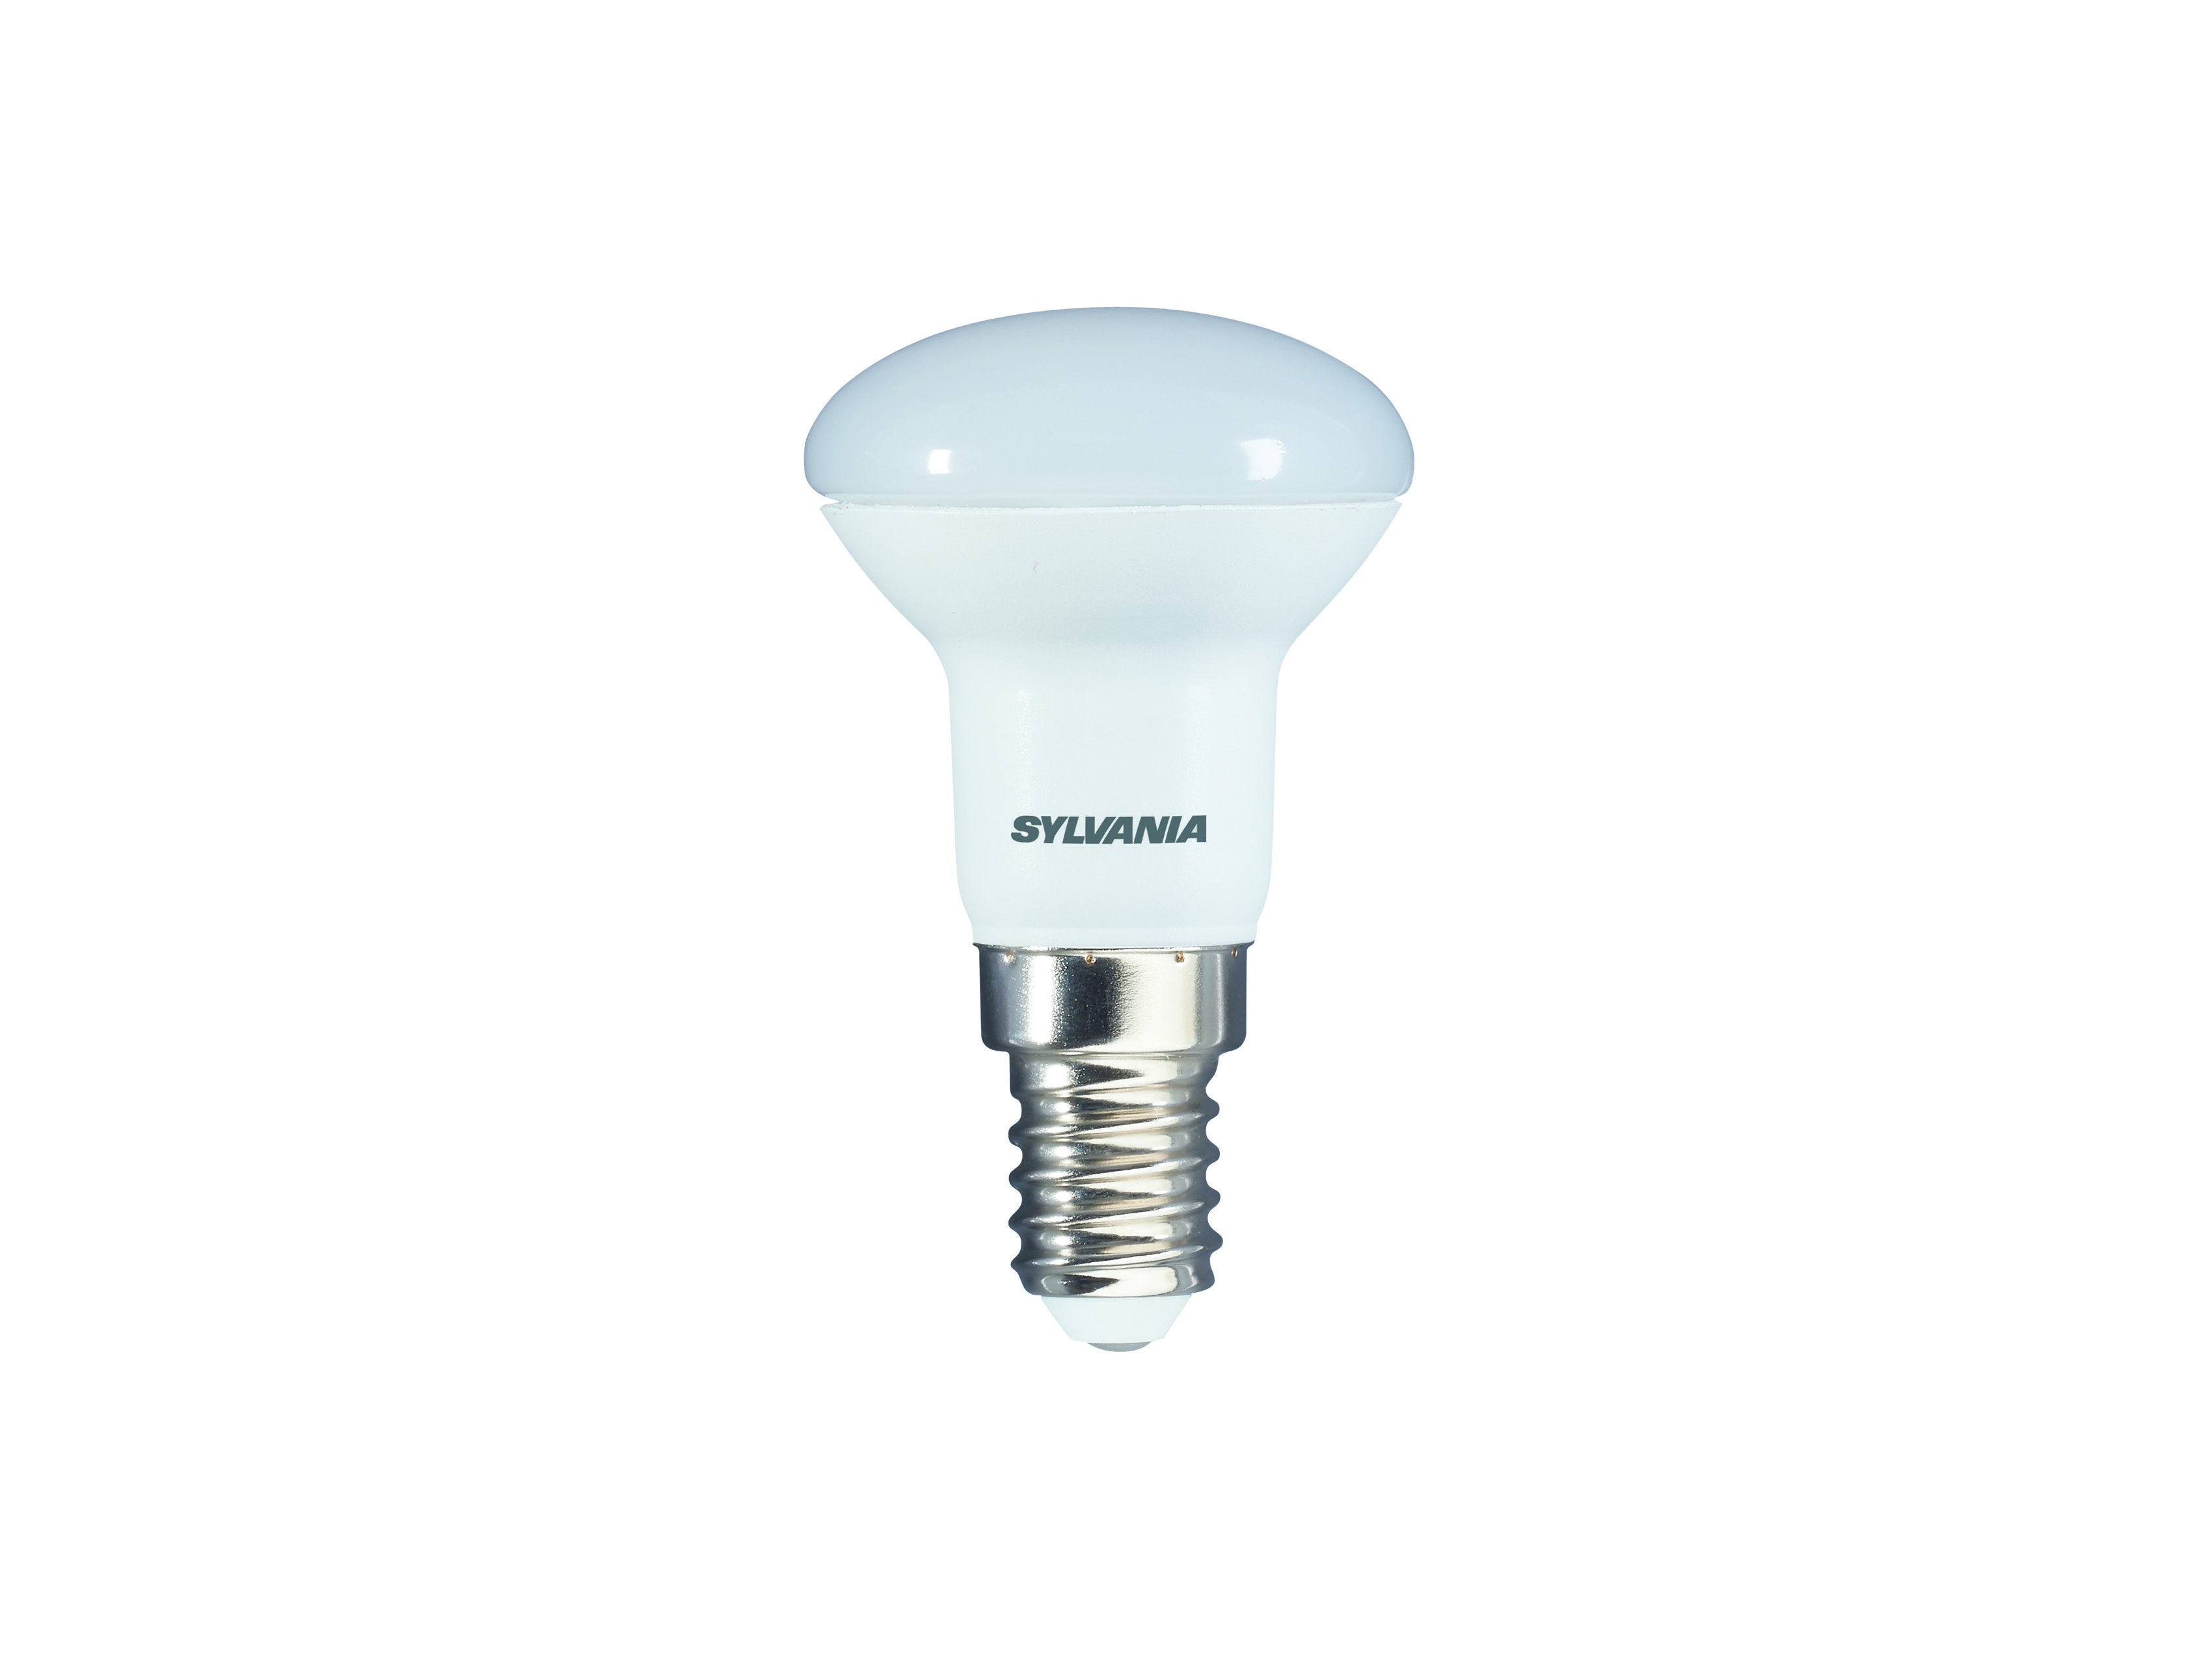 Sylvania Refled R39 E14 3w 250lm 830 Bl Led Lampe 1 Stuck Eek A